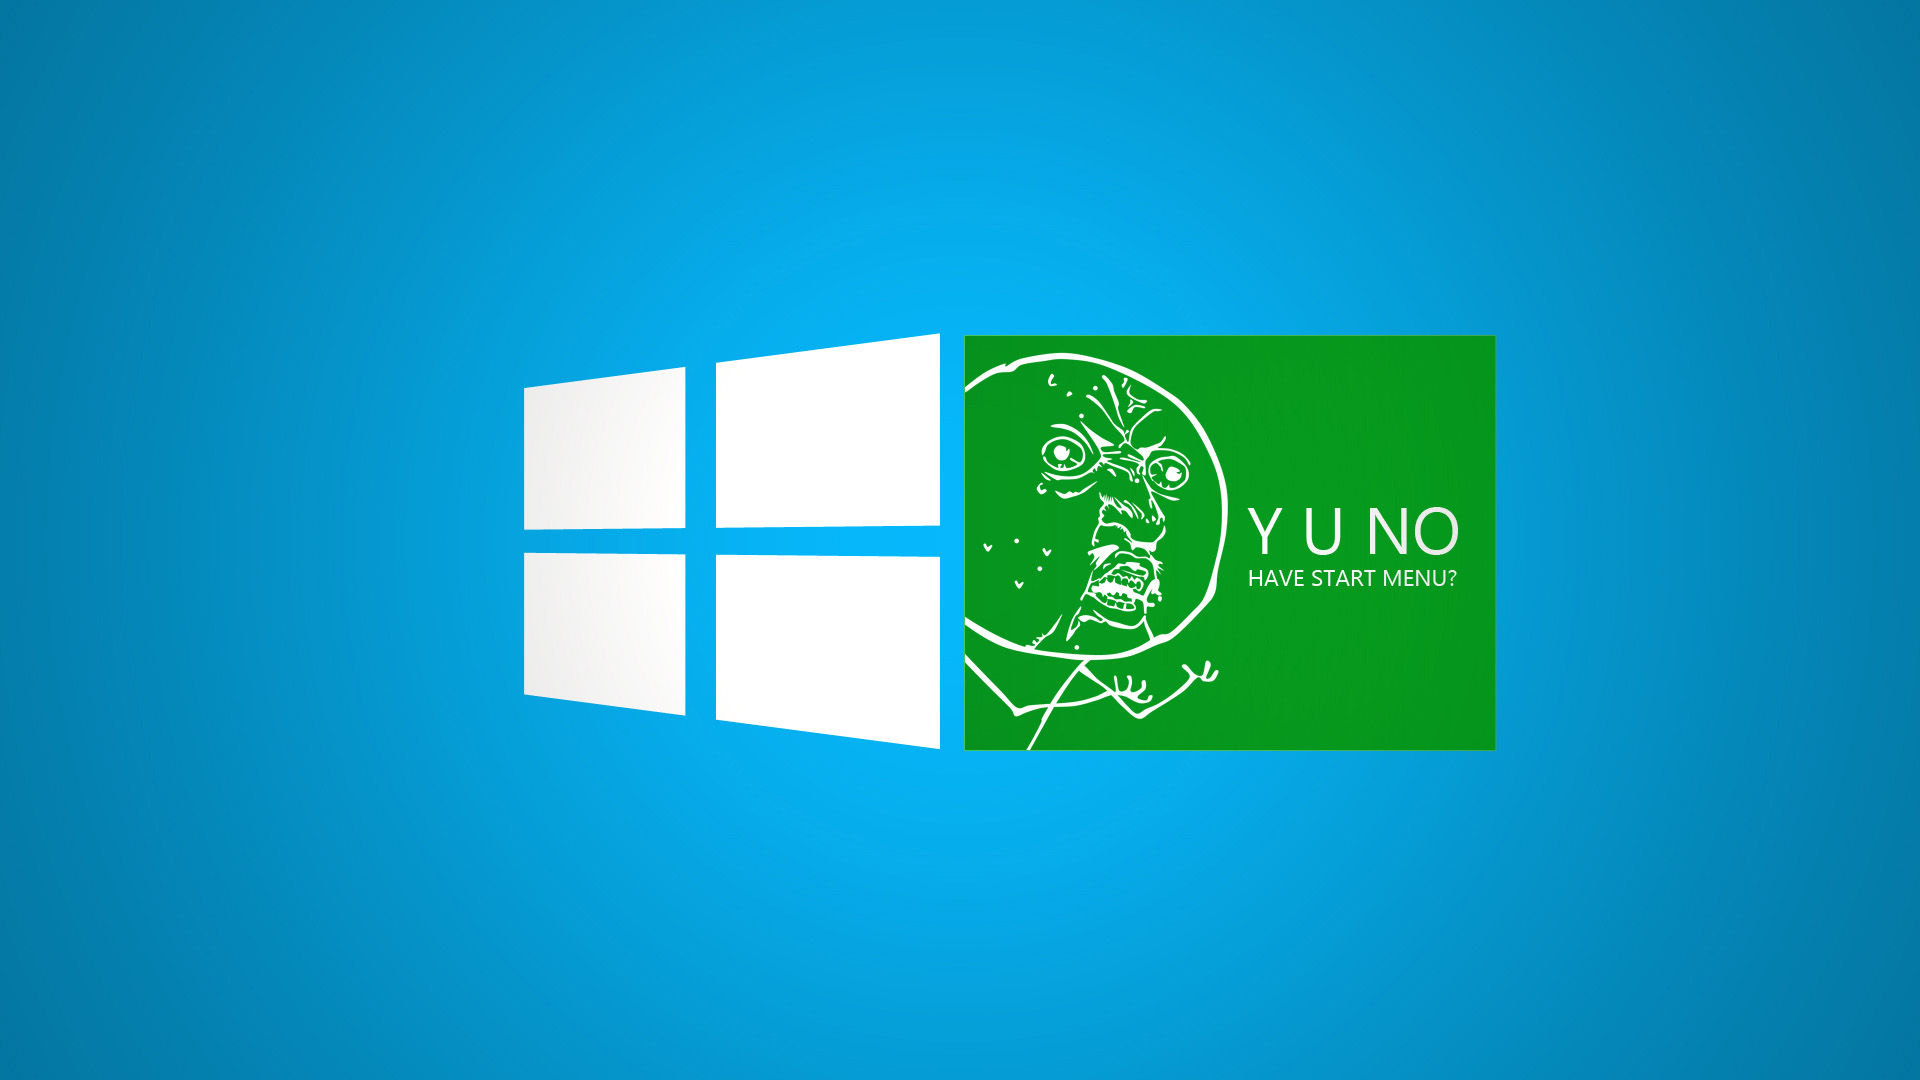 funny green windows 8 meme desktop wallpaper